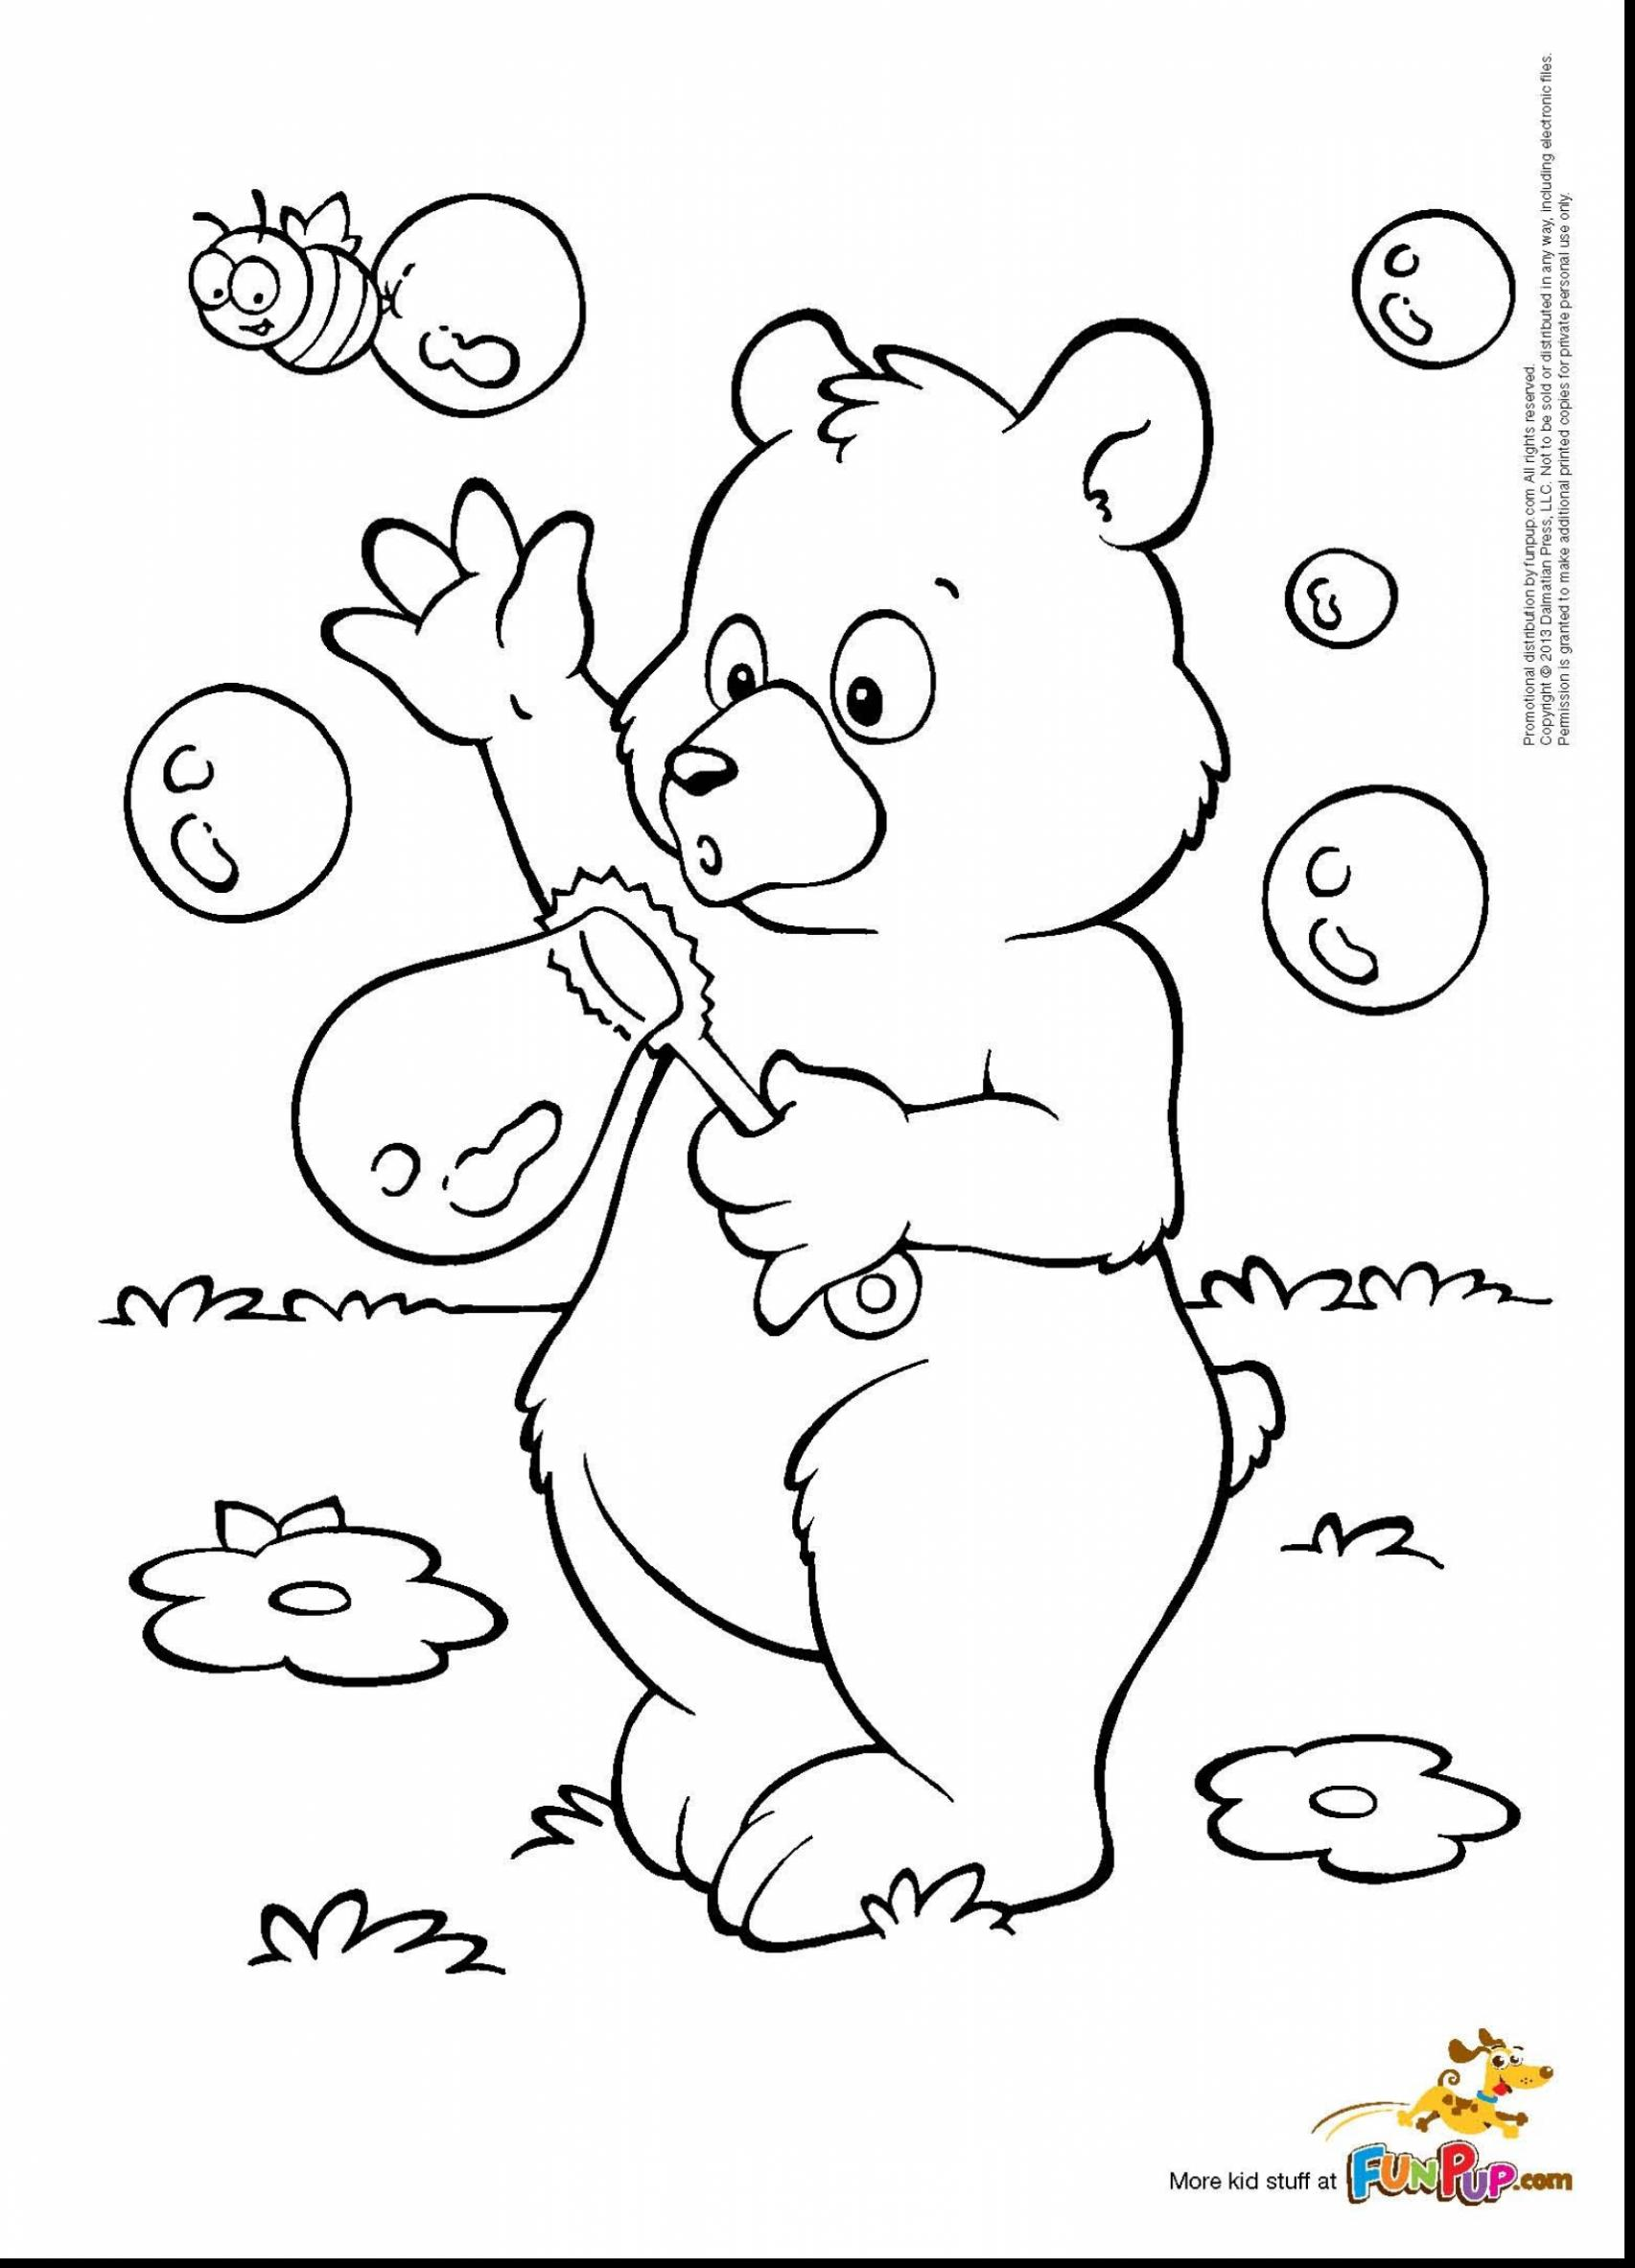 1705x2365 May Coloring Pages May Coloring Pages Outstanding Printable